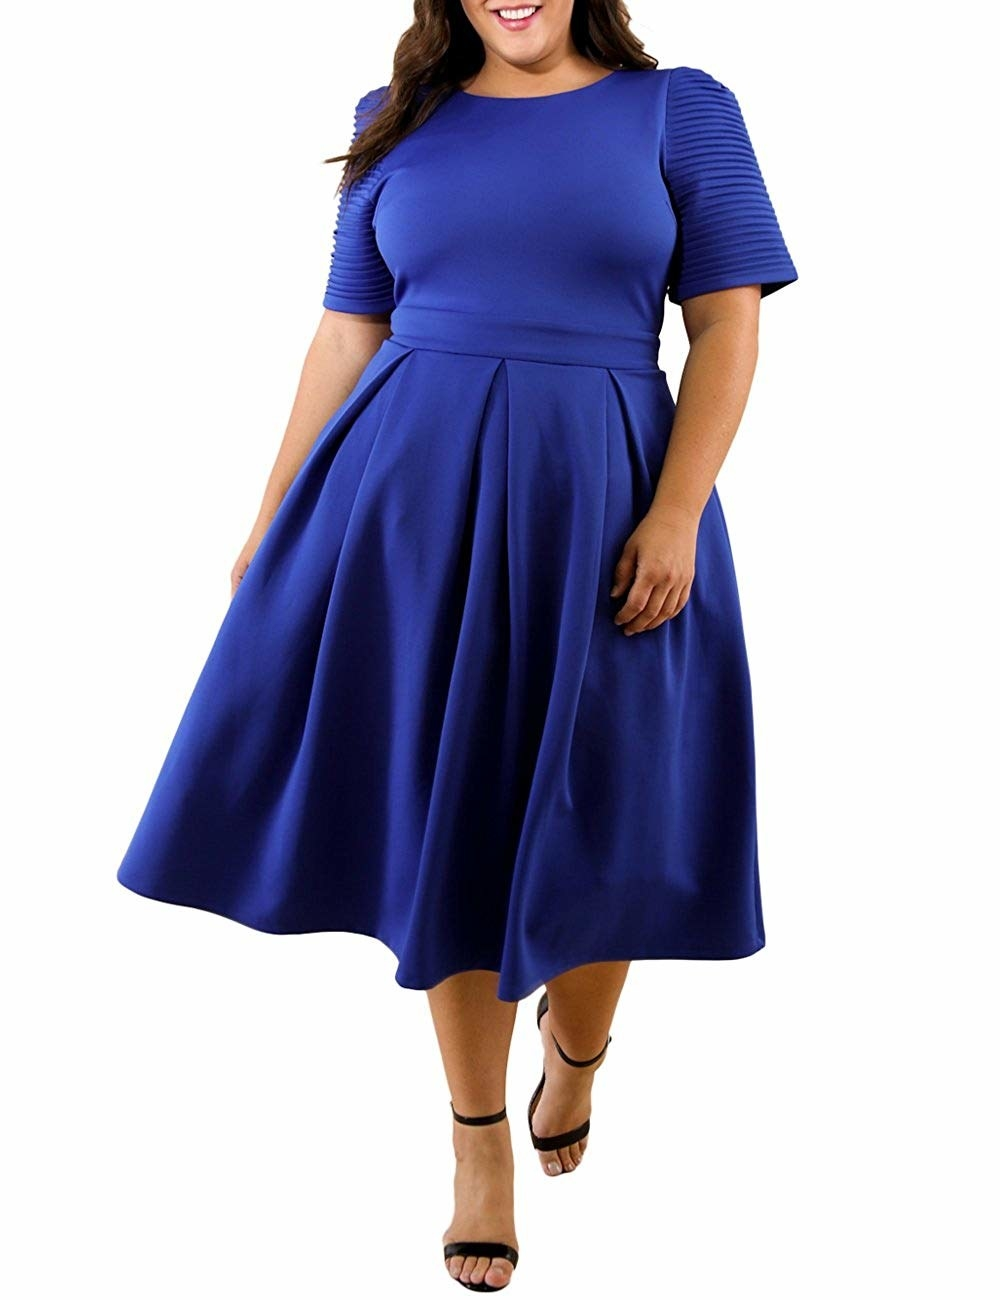 4a649a850192c A textured-sleeve '50s-style midi dress you'll want to take for a ~twirl~  as soon as it arrives.